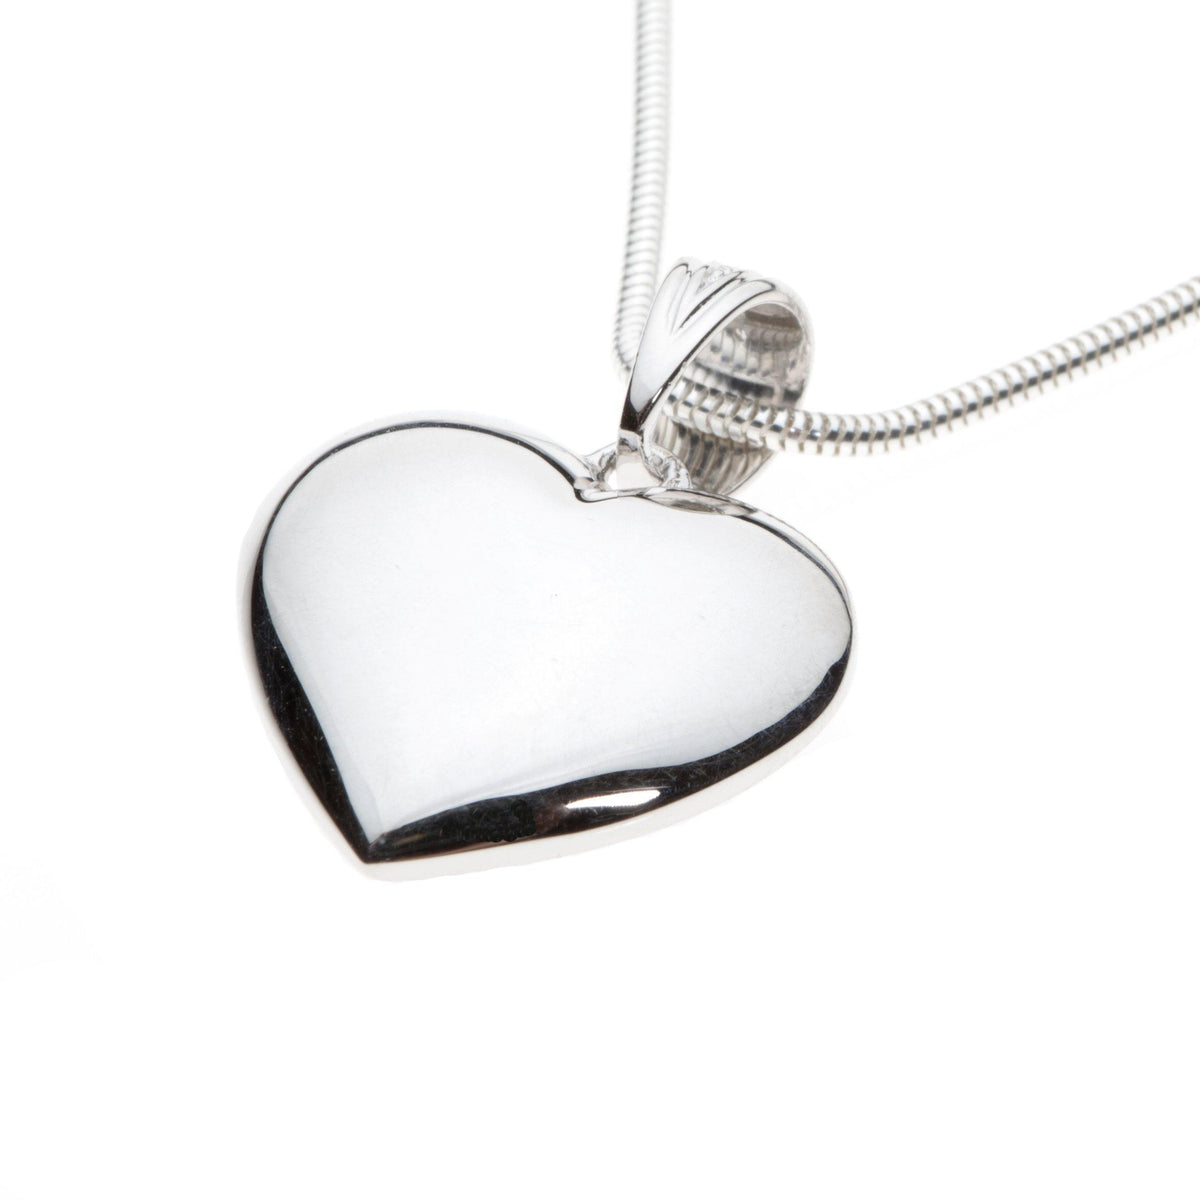 Belgravia Design 29 Cremation Ashes Pendant 925 Silver - Urns UK